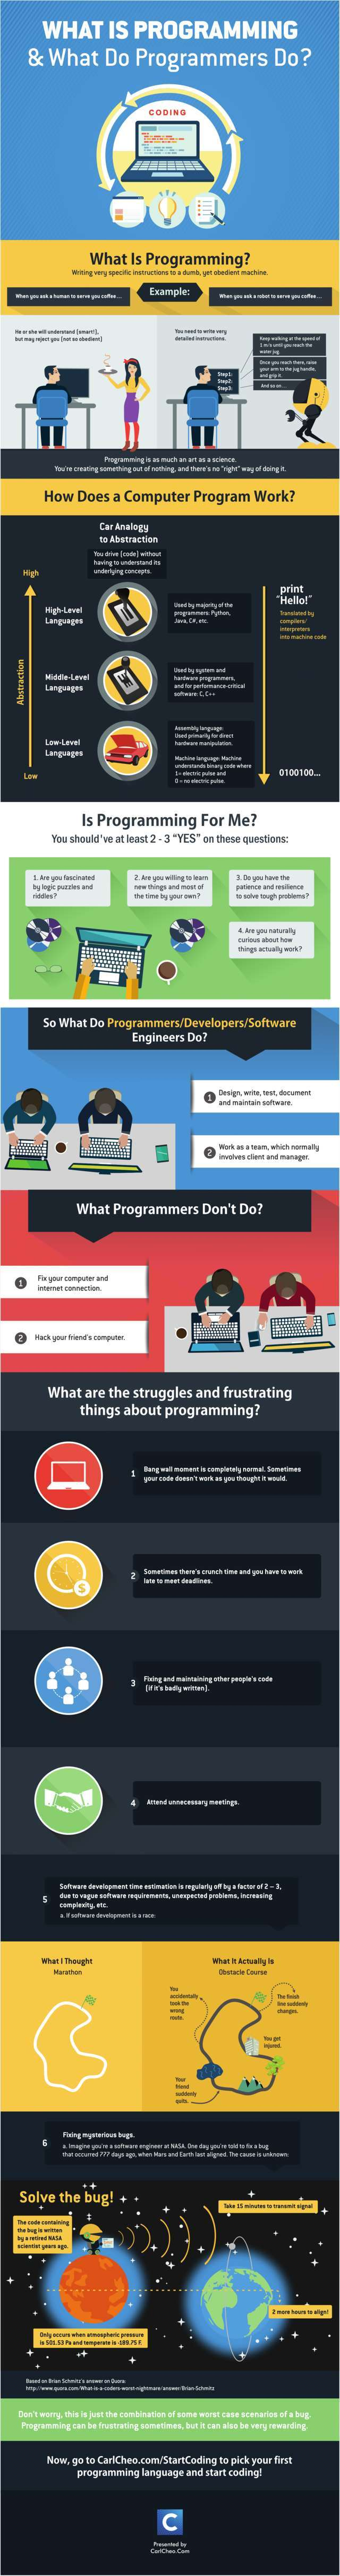 what-is-programming-what-do-programmers-do